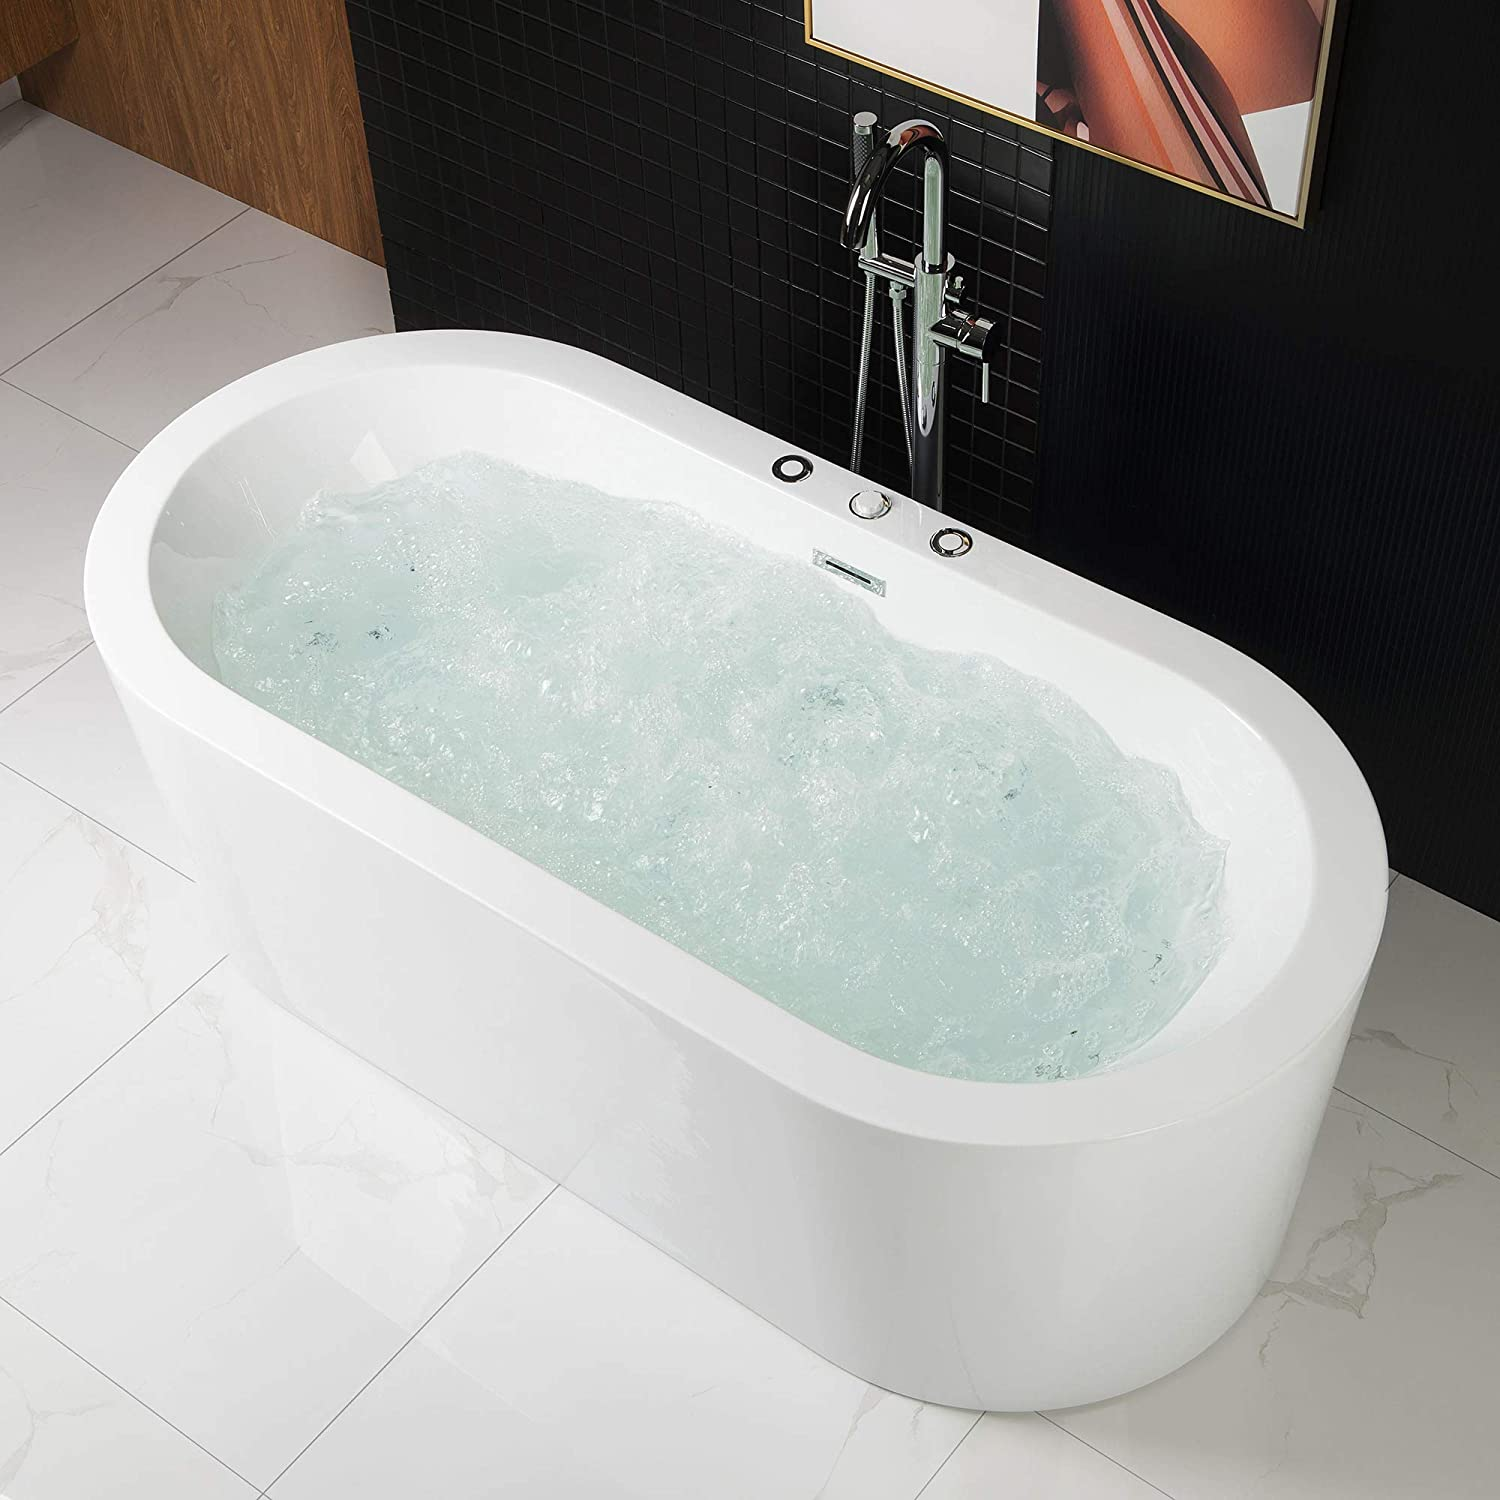 Best Whirlpool Tubs-Woodbridge b-0030/bts 1606 Freestanding Tub - Honorary Mention